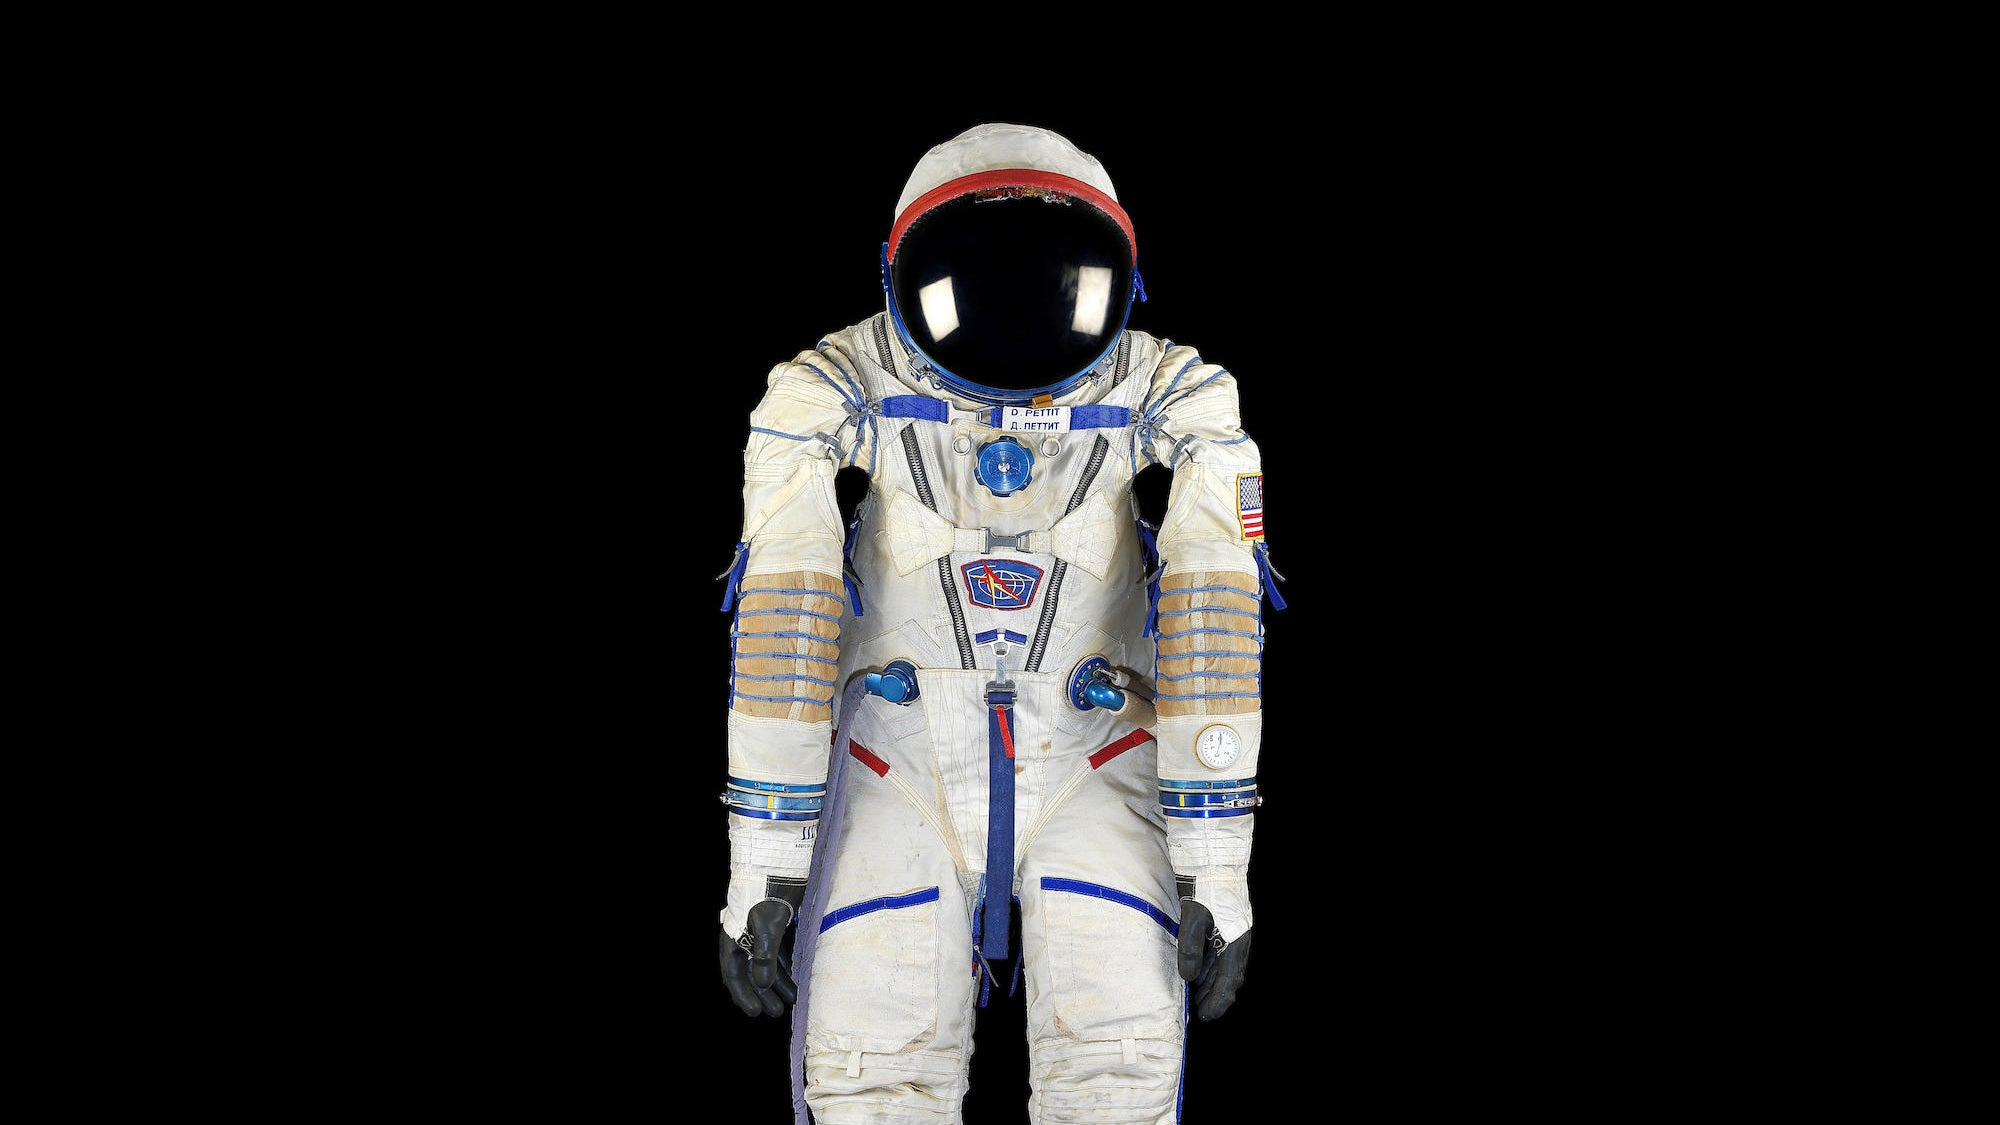 This Awesome Vintage Astronaut Equipment Is Suprisingly Cheap